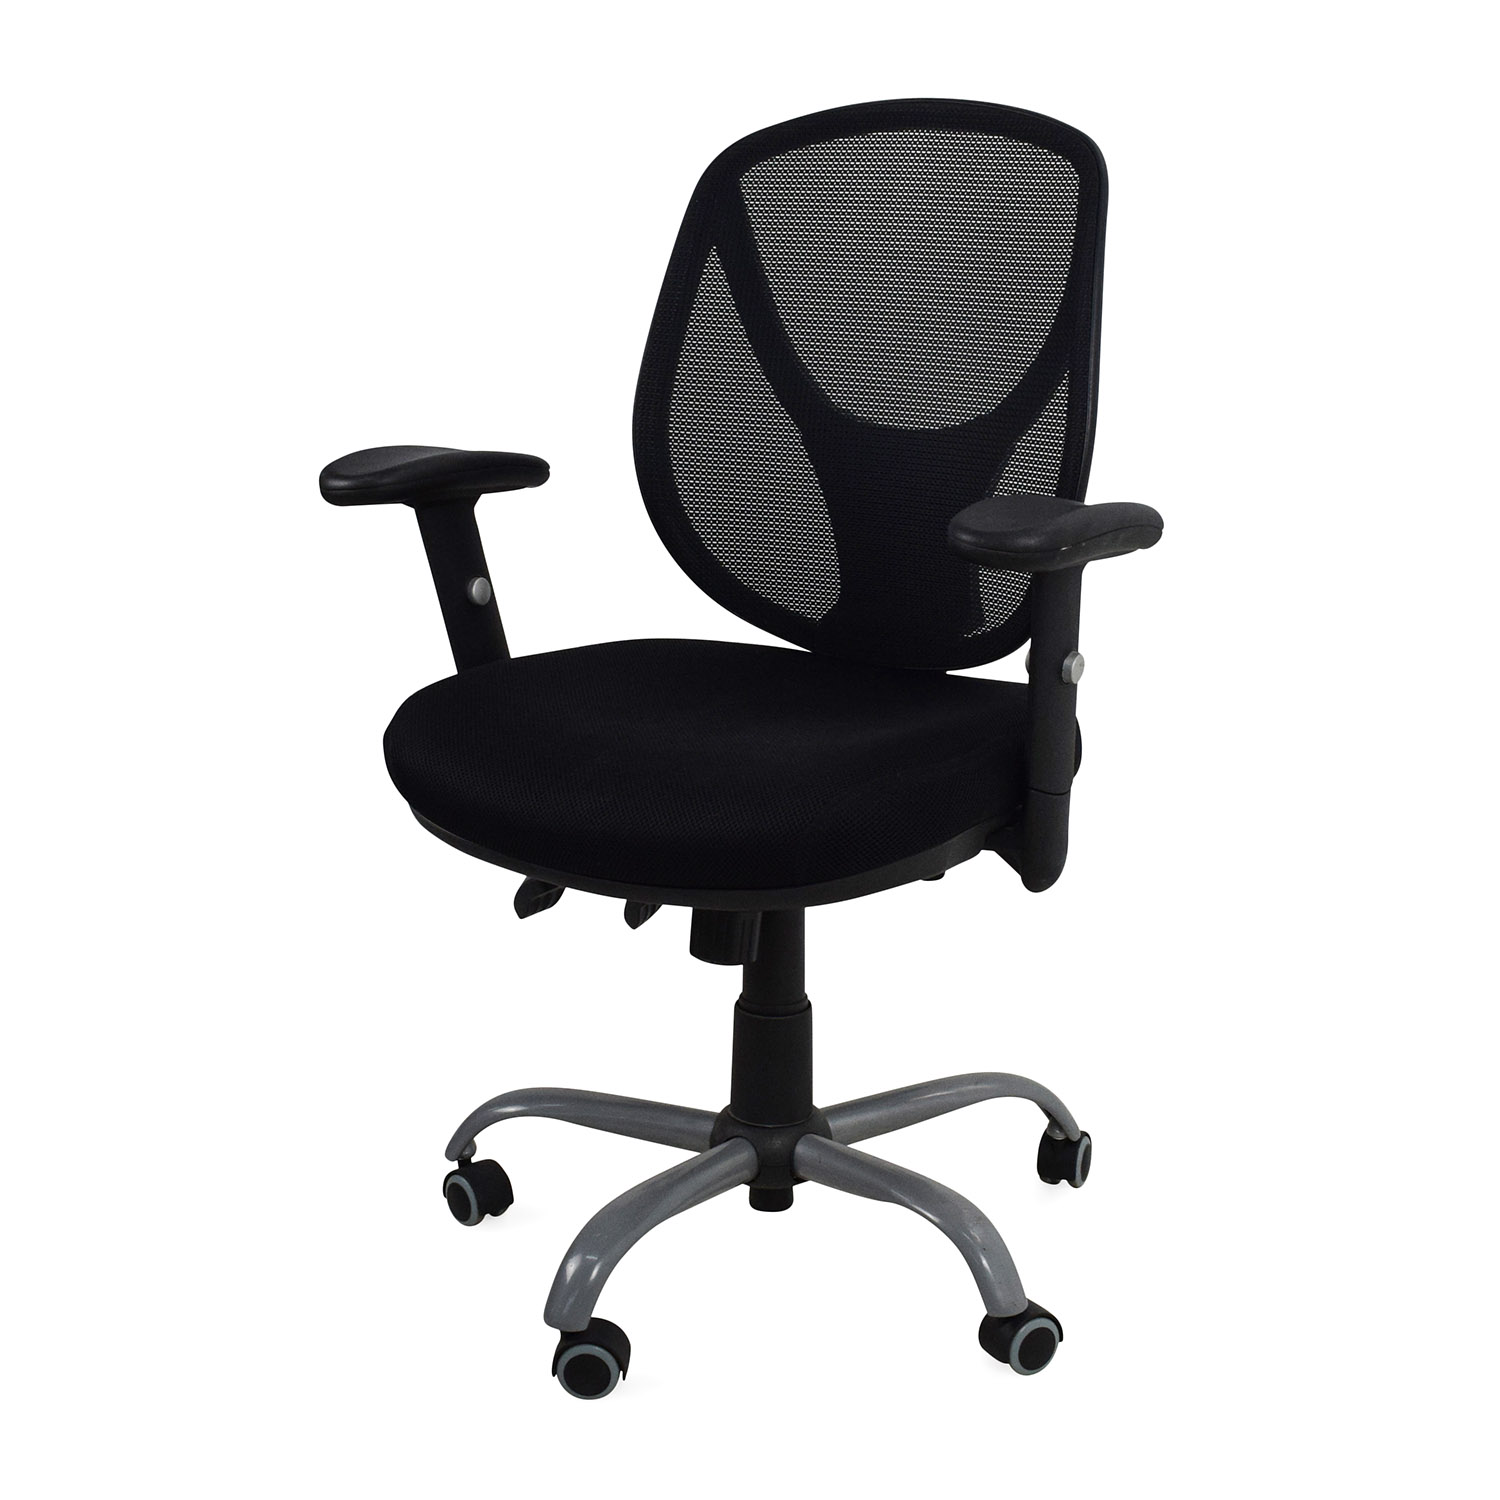 Mesh Ergonomic Office Chair 75 Off Staples Staples Acadia Ergonomic Mesh Office